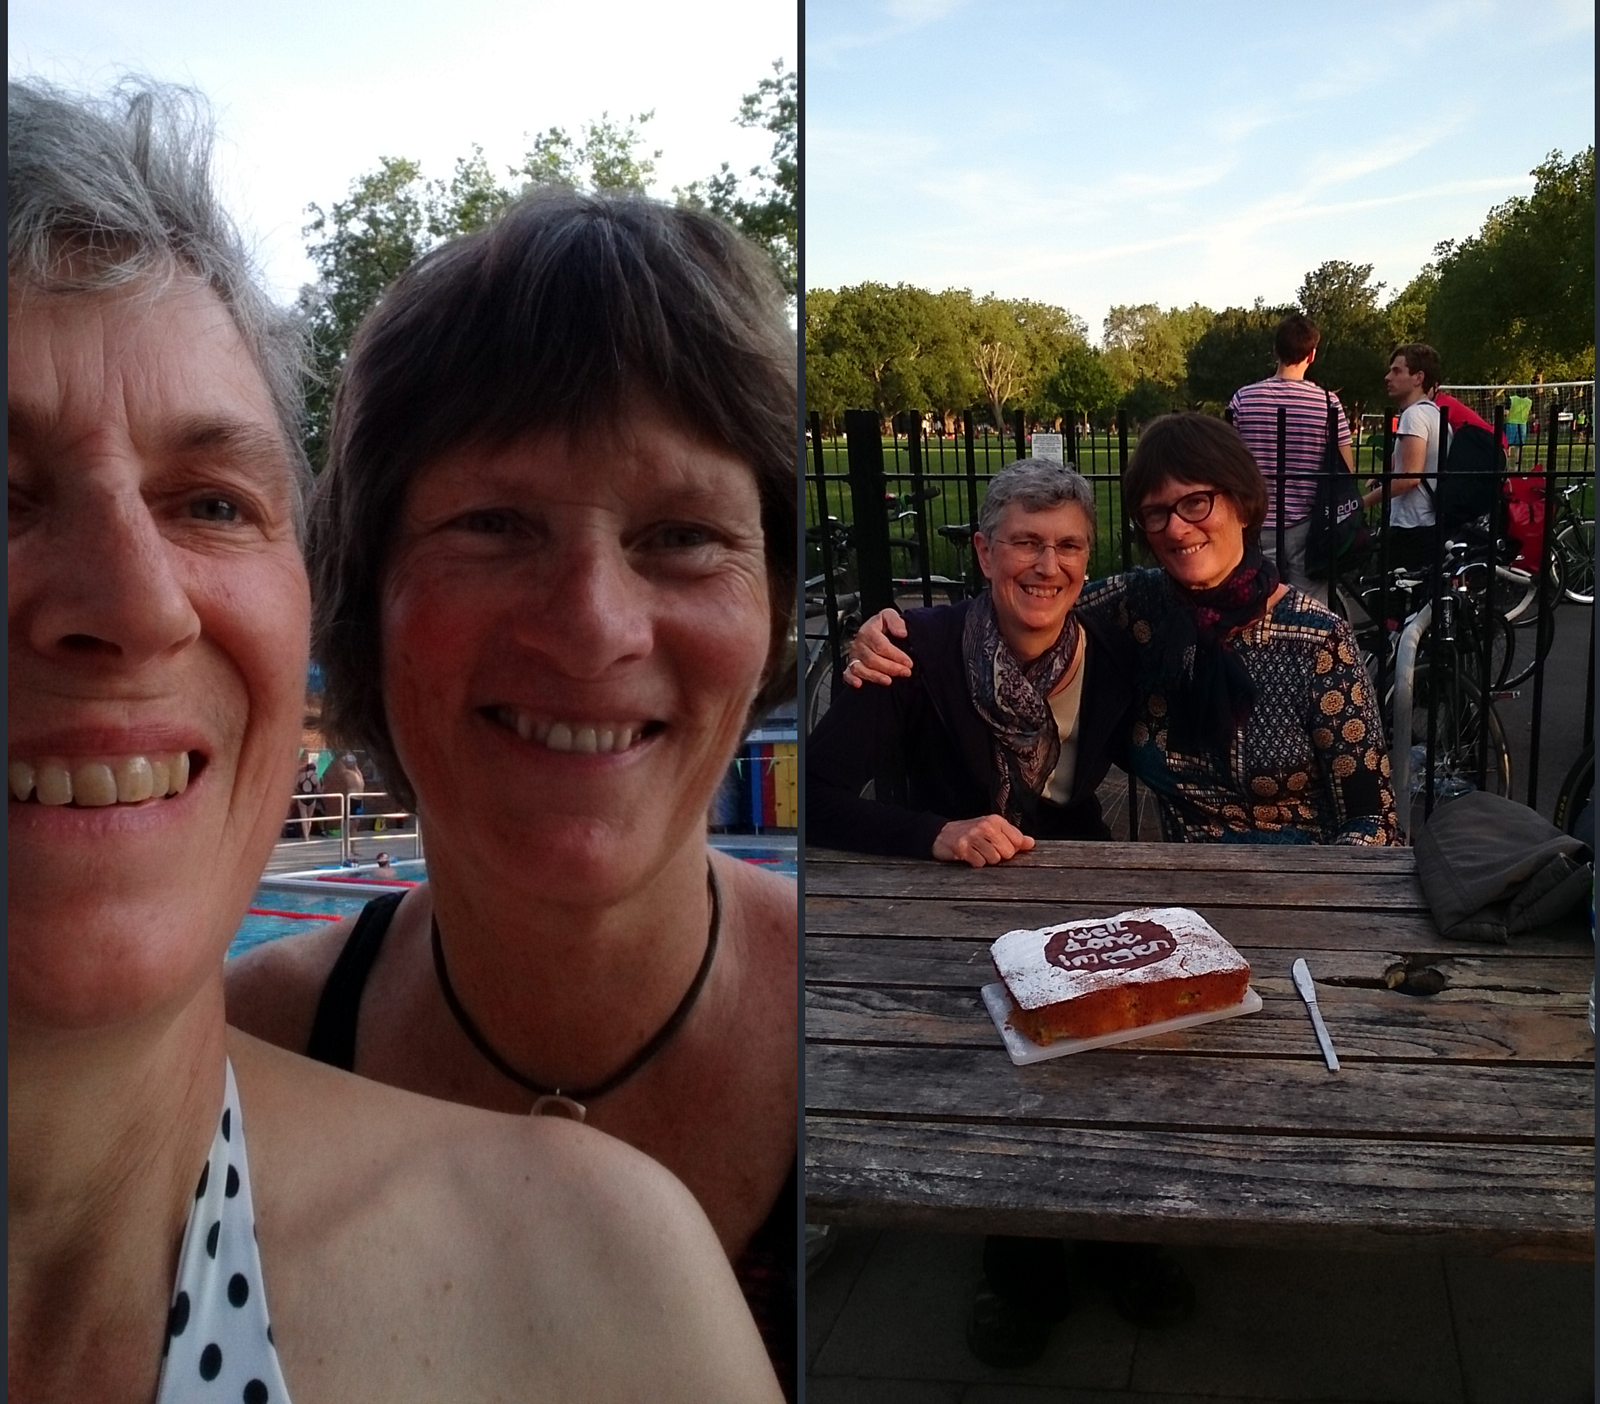 two women selfie, and photo of them with cake iced with 'Well done Imogen'